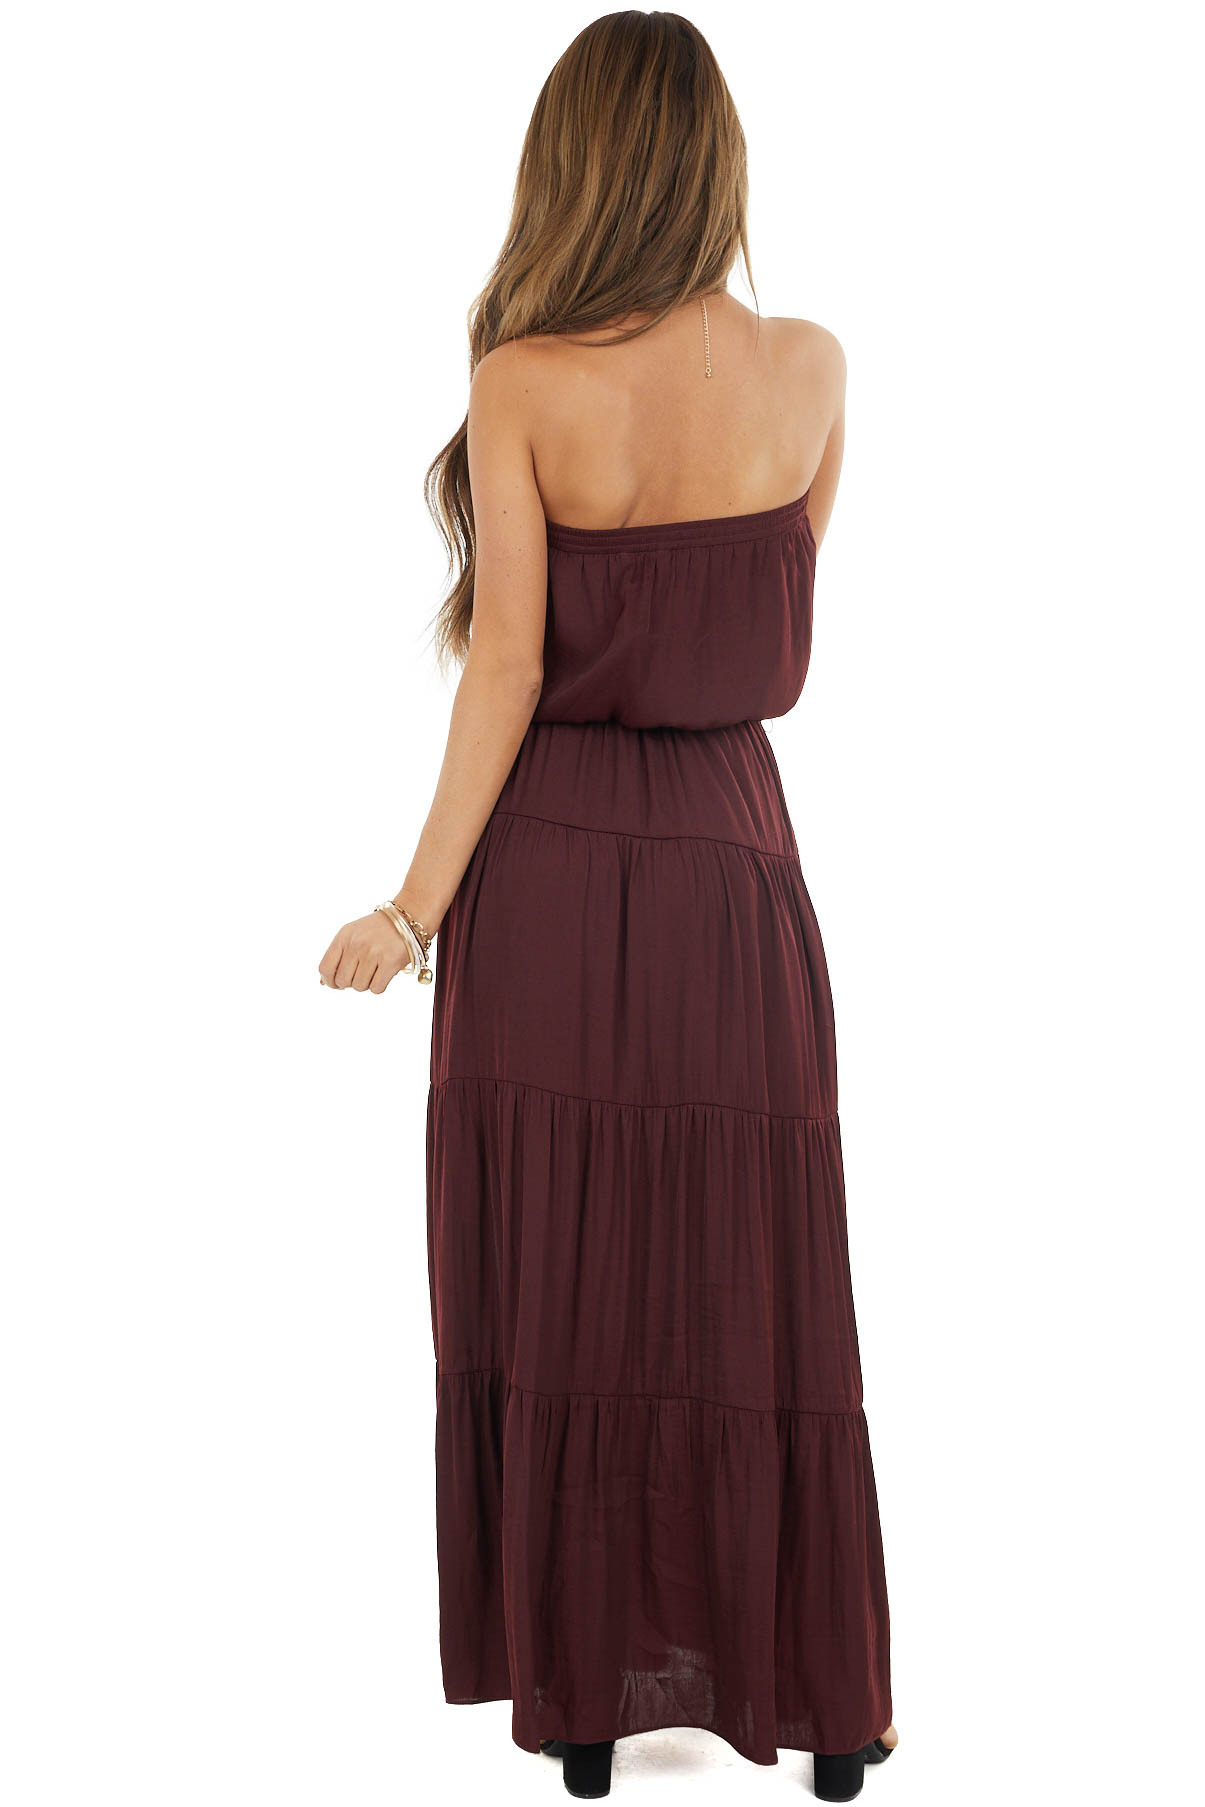 Merlot Tiered Tube Top Maxi Dress with Elastic Waist